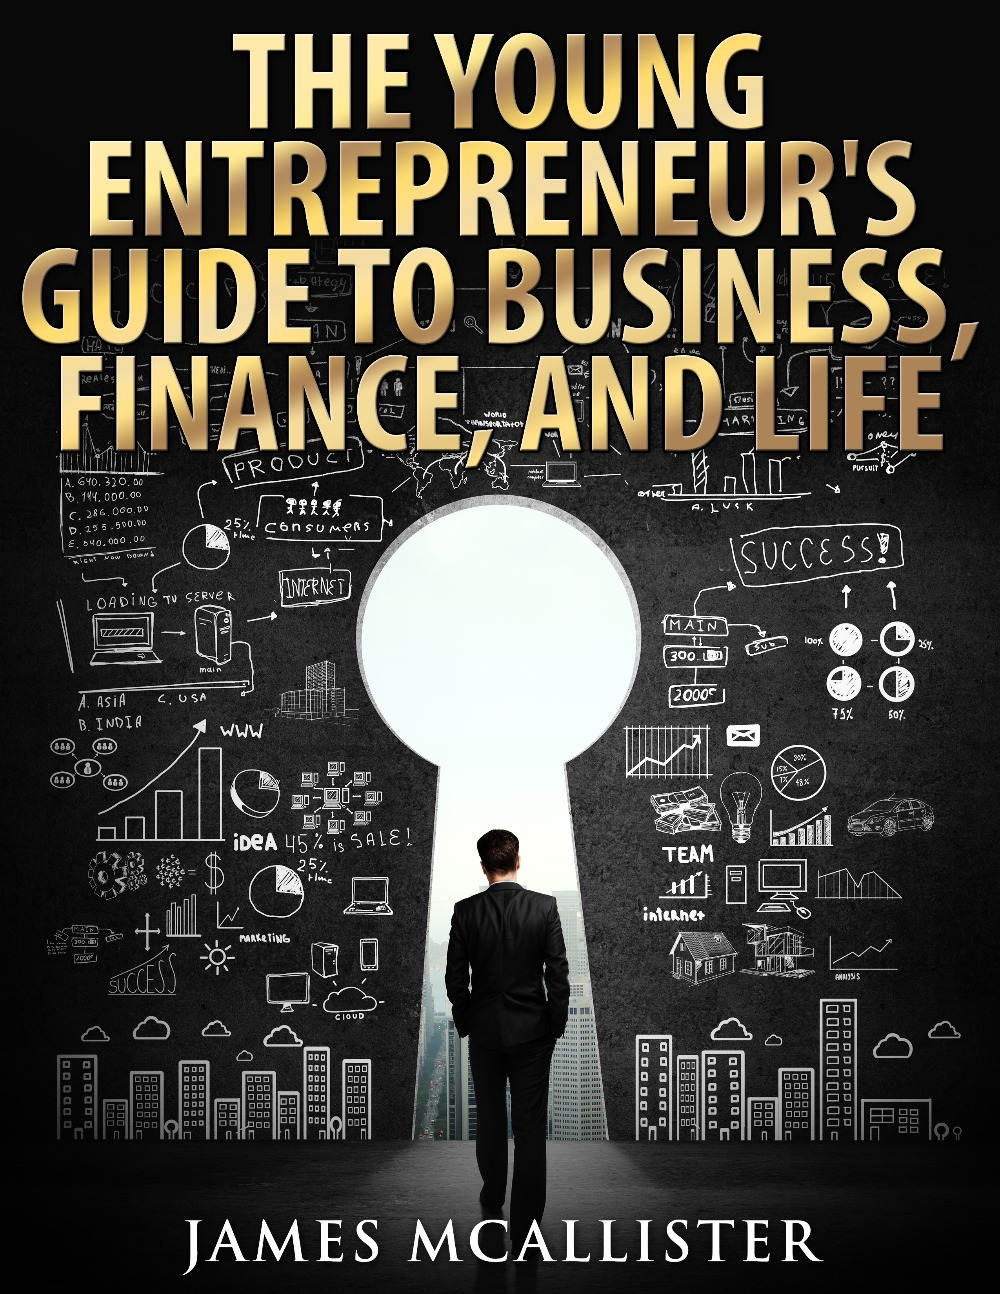 The Young Entrepreneur's Guide to Business, Finance, and Life